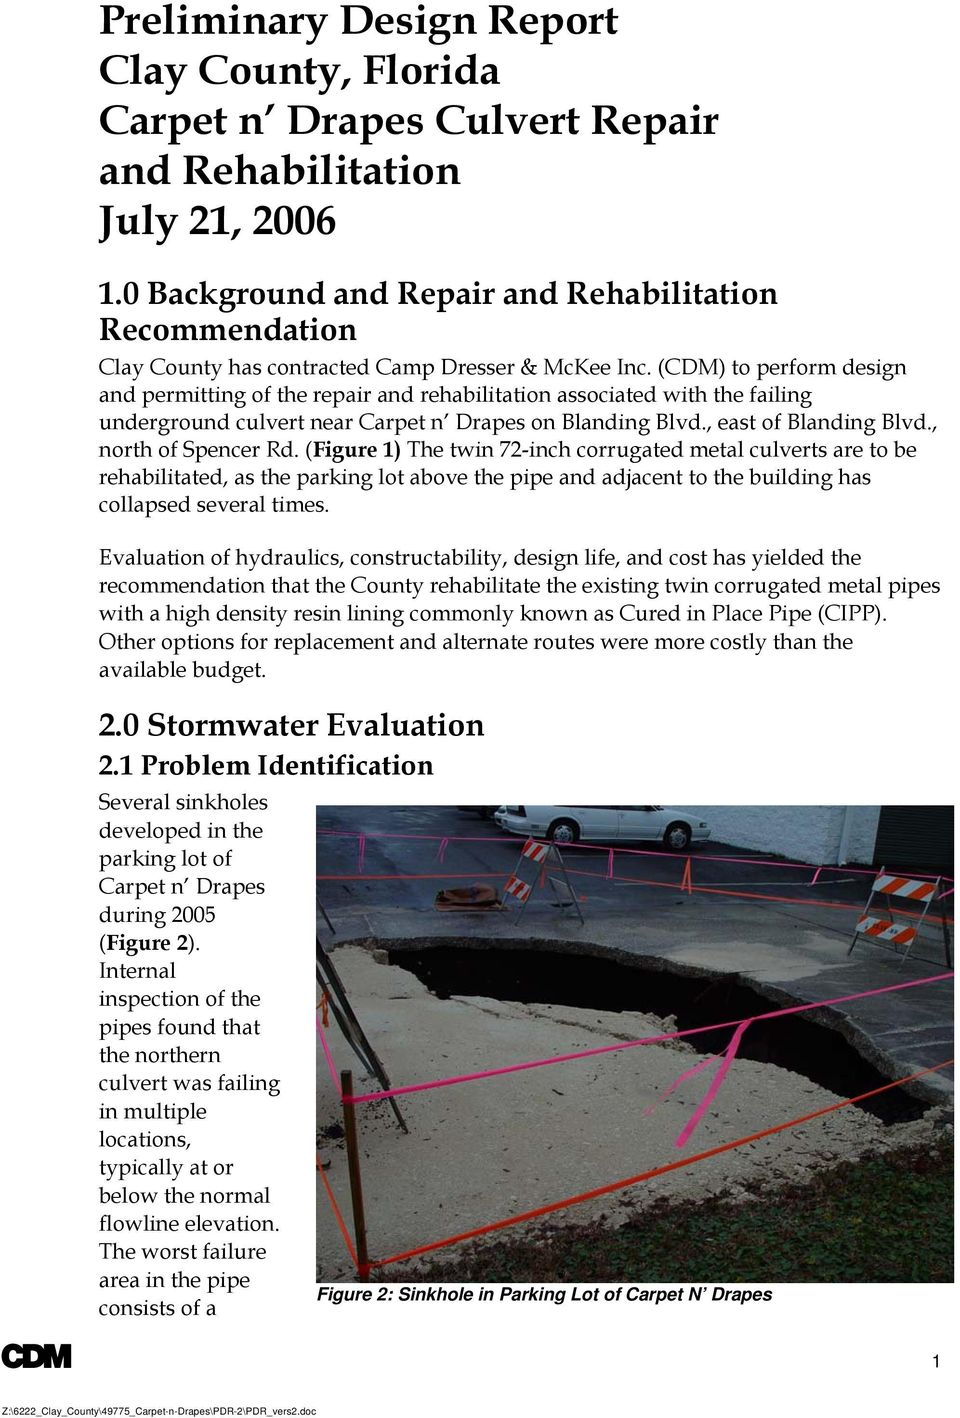 , north of Spencer Rd. (Figure 1) The twin 72-inch corrugated metal culverts are to be rehabilitated, as the parking lot above the pipe and adjacent to the building has collapsed several times.